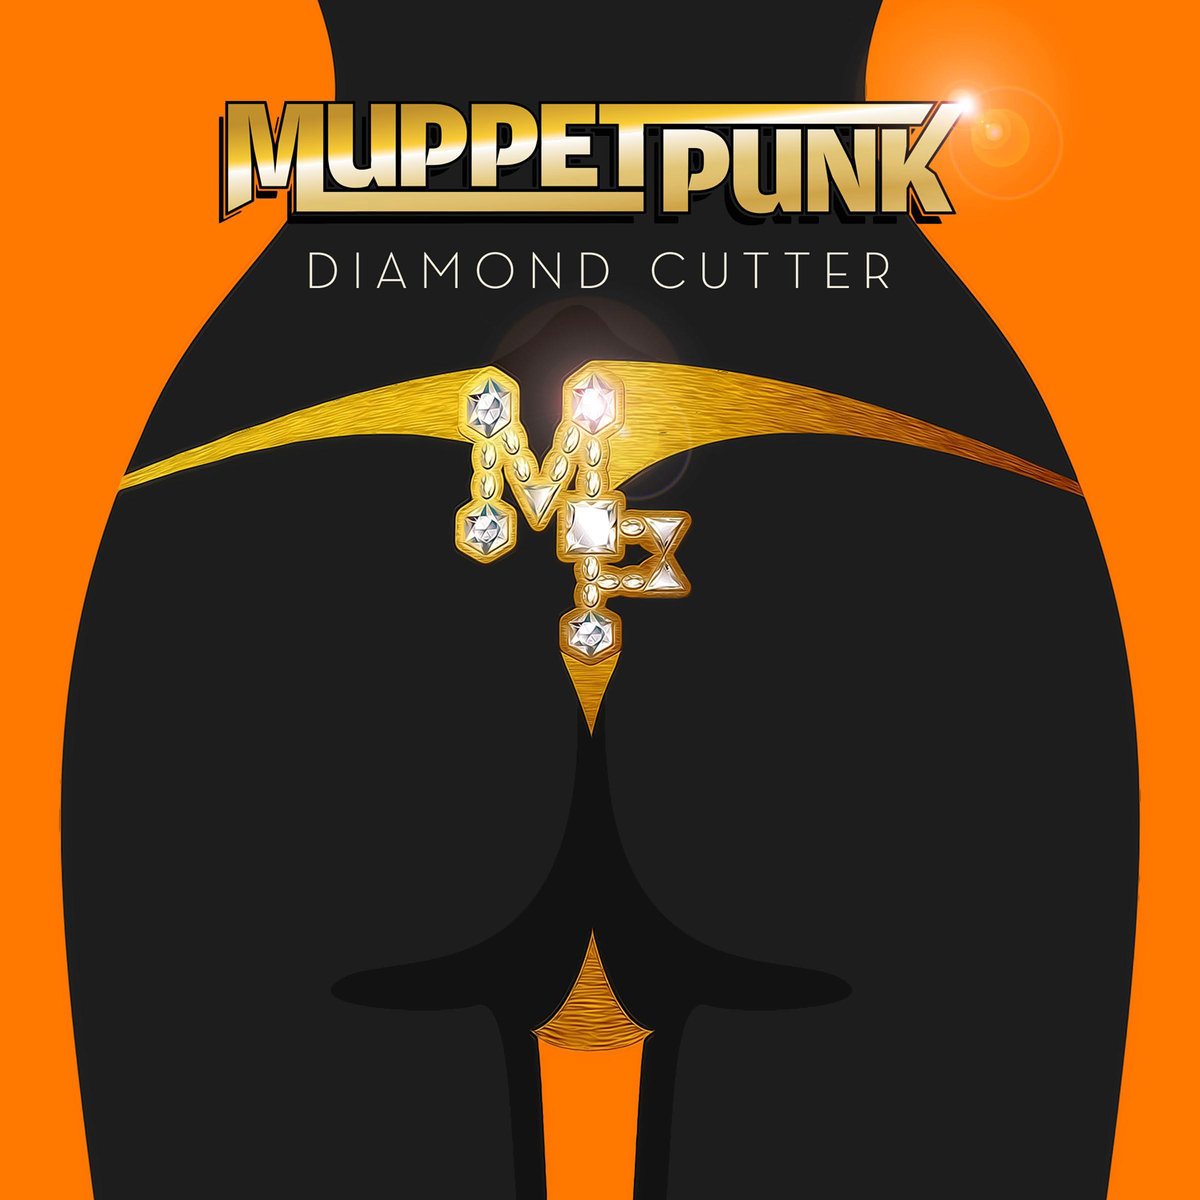 Muppet Punk - Hoochie Pop @ 'Diamond Cutters' album (bass, devi genuone)